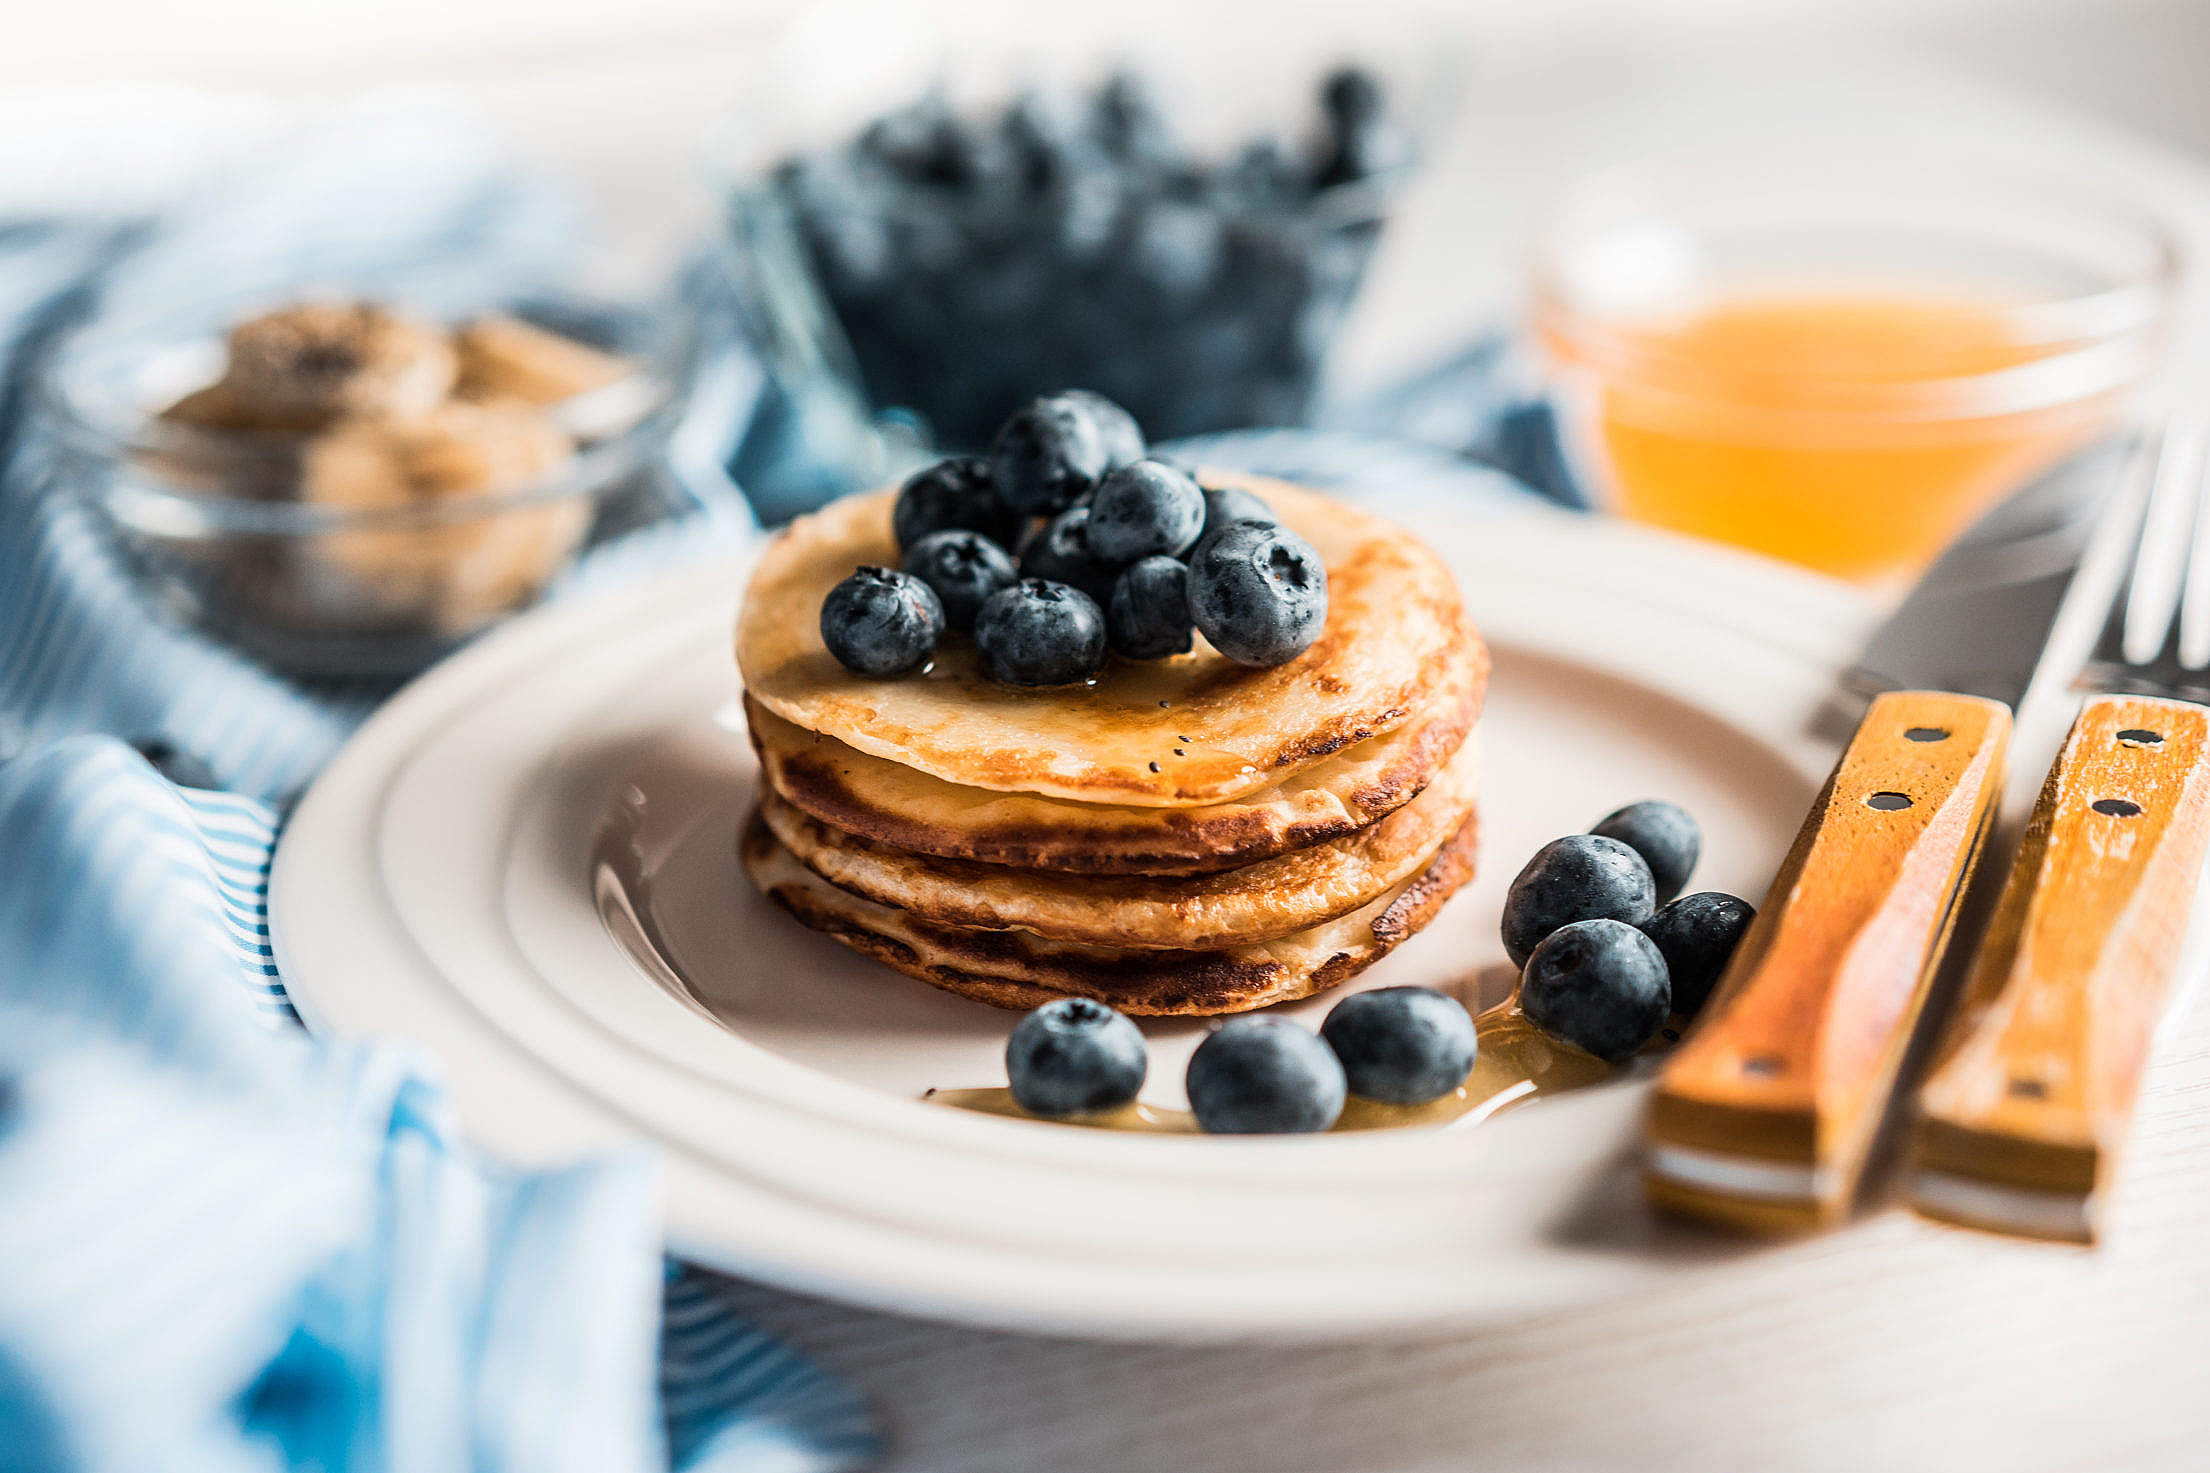 Homemade Pancakes with Blueberries Free Stock Photo